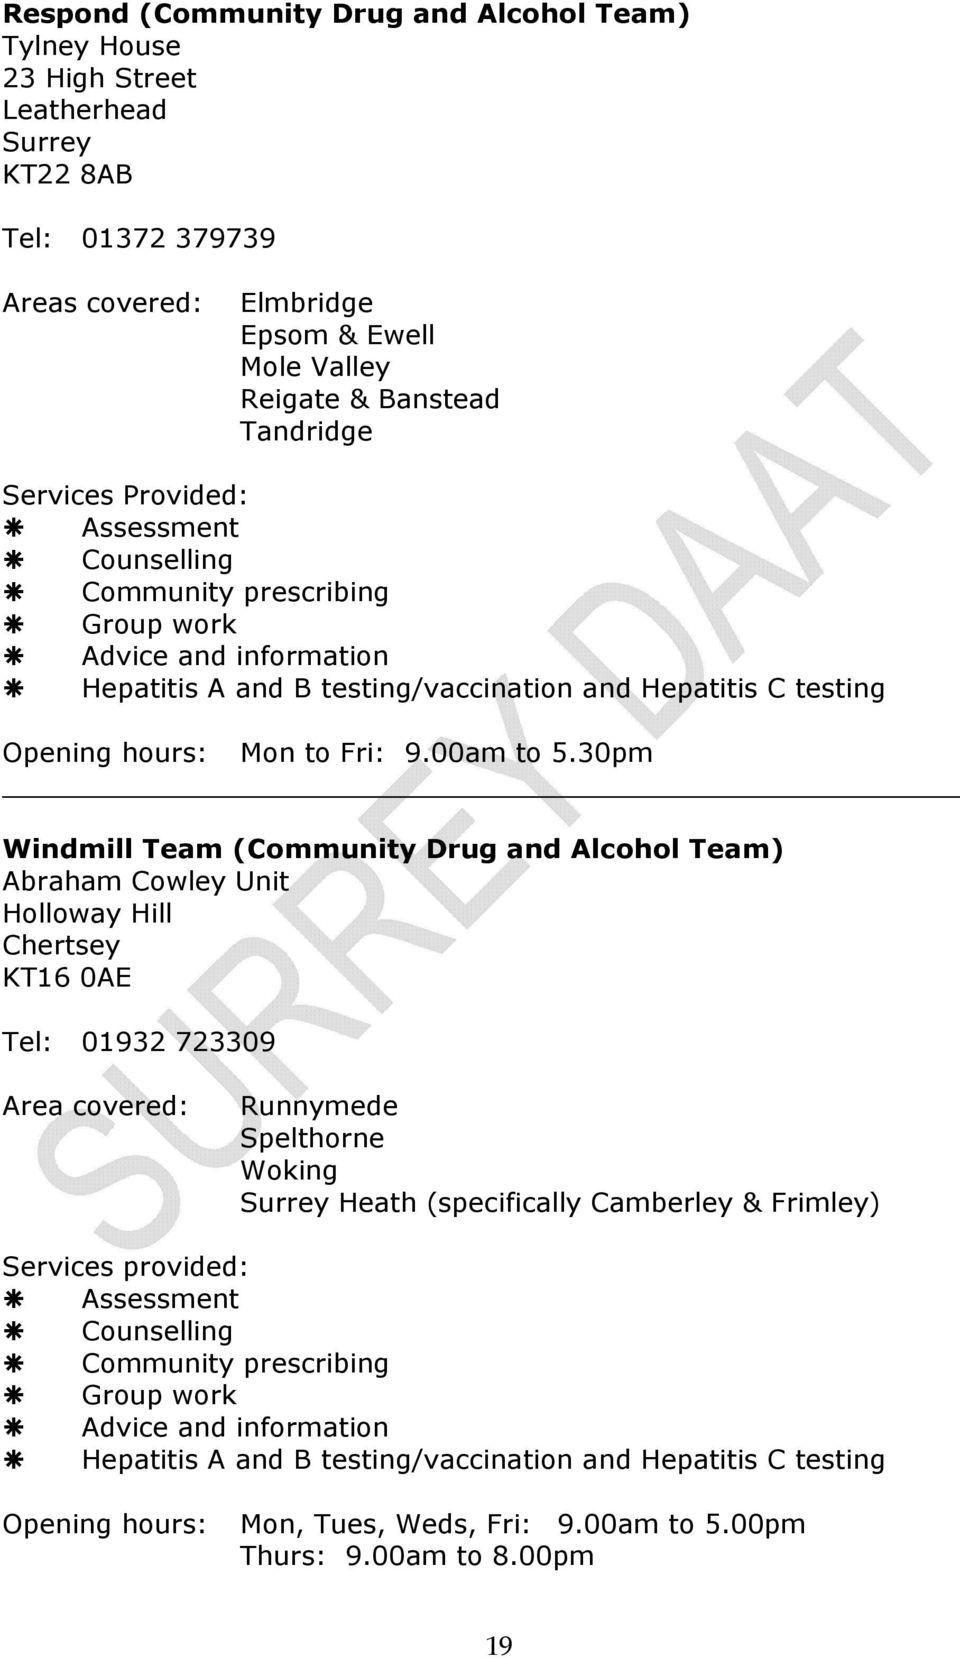 30pm Windmill Team (Community Drug and Alcohol Team) Abraham Cowley Unit Holloway Hill Chertsey KT16 0AE Tel: 01932 723309 Area covered: Runnymede Spelthorne Woking Surrey Heath (specifically